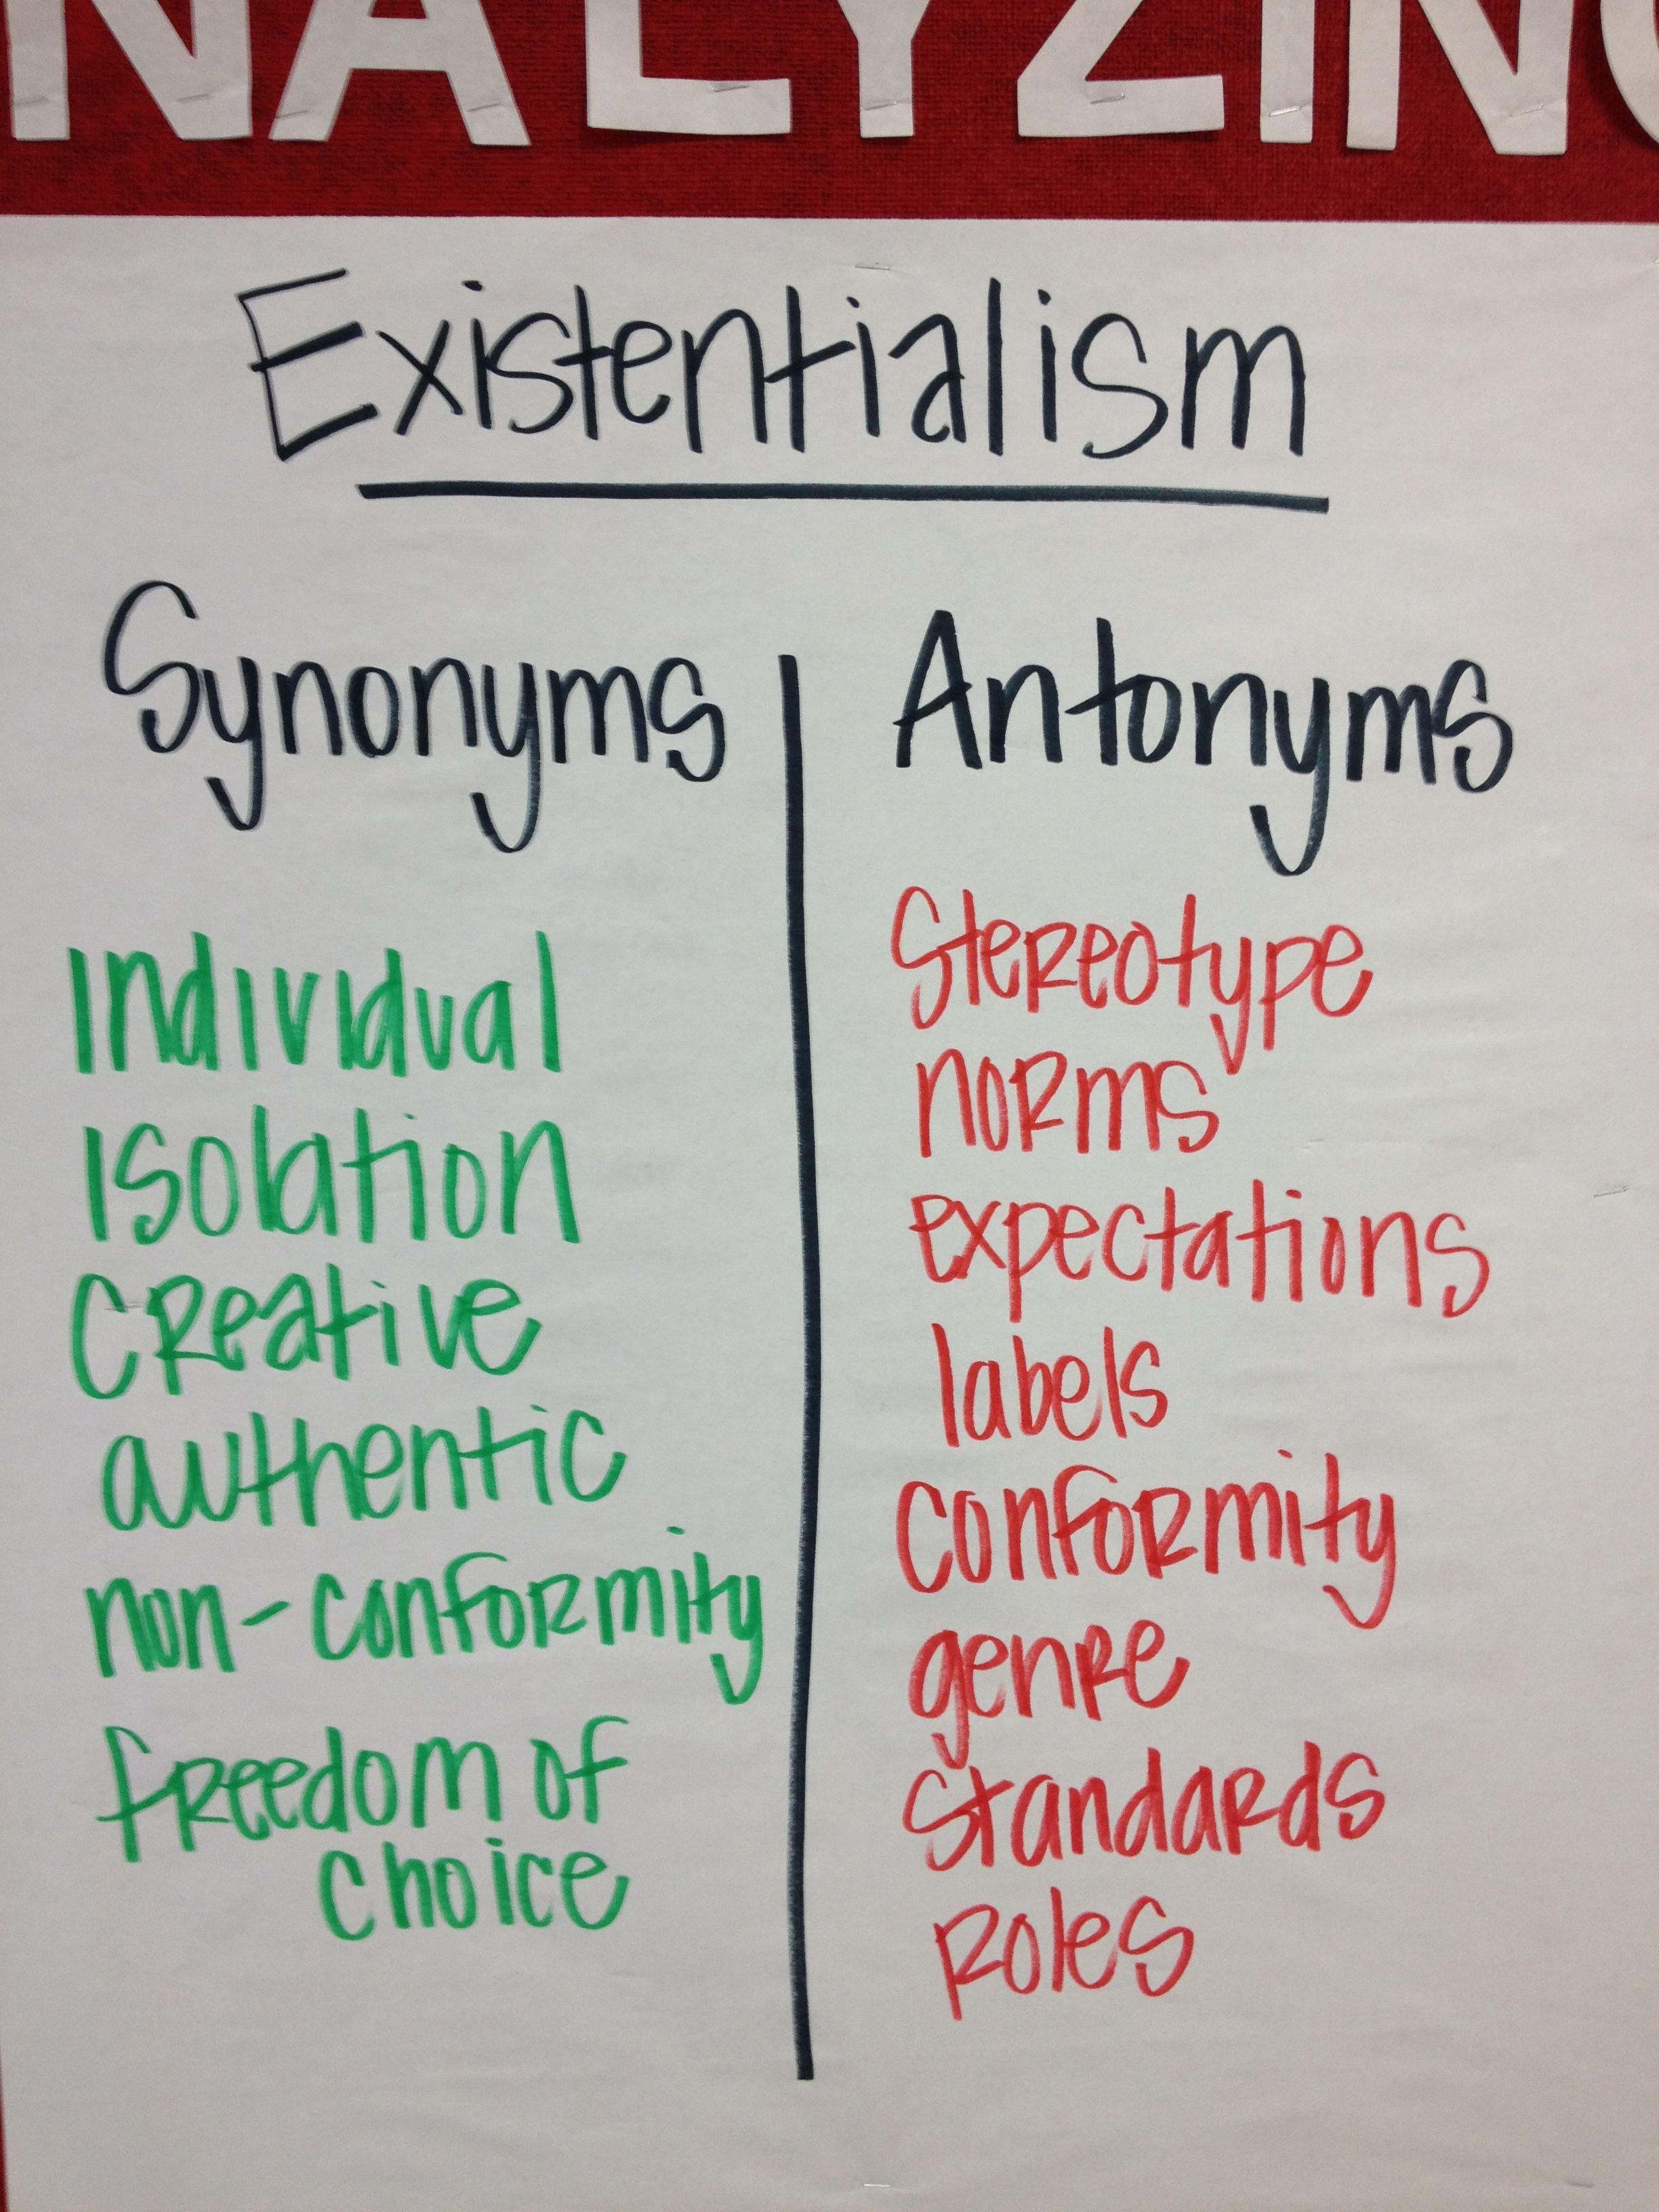 metamorphosis essays existentialism Free essay: existentialism in the metamorphosis and the hunger artist existentialism is a philosophy dealing with man's aloneness in the universe either.